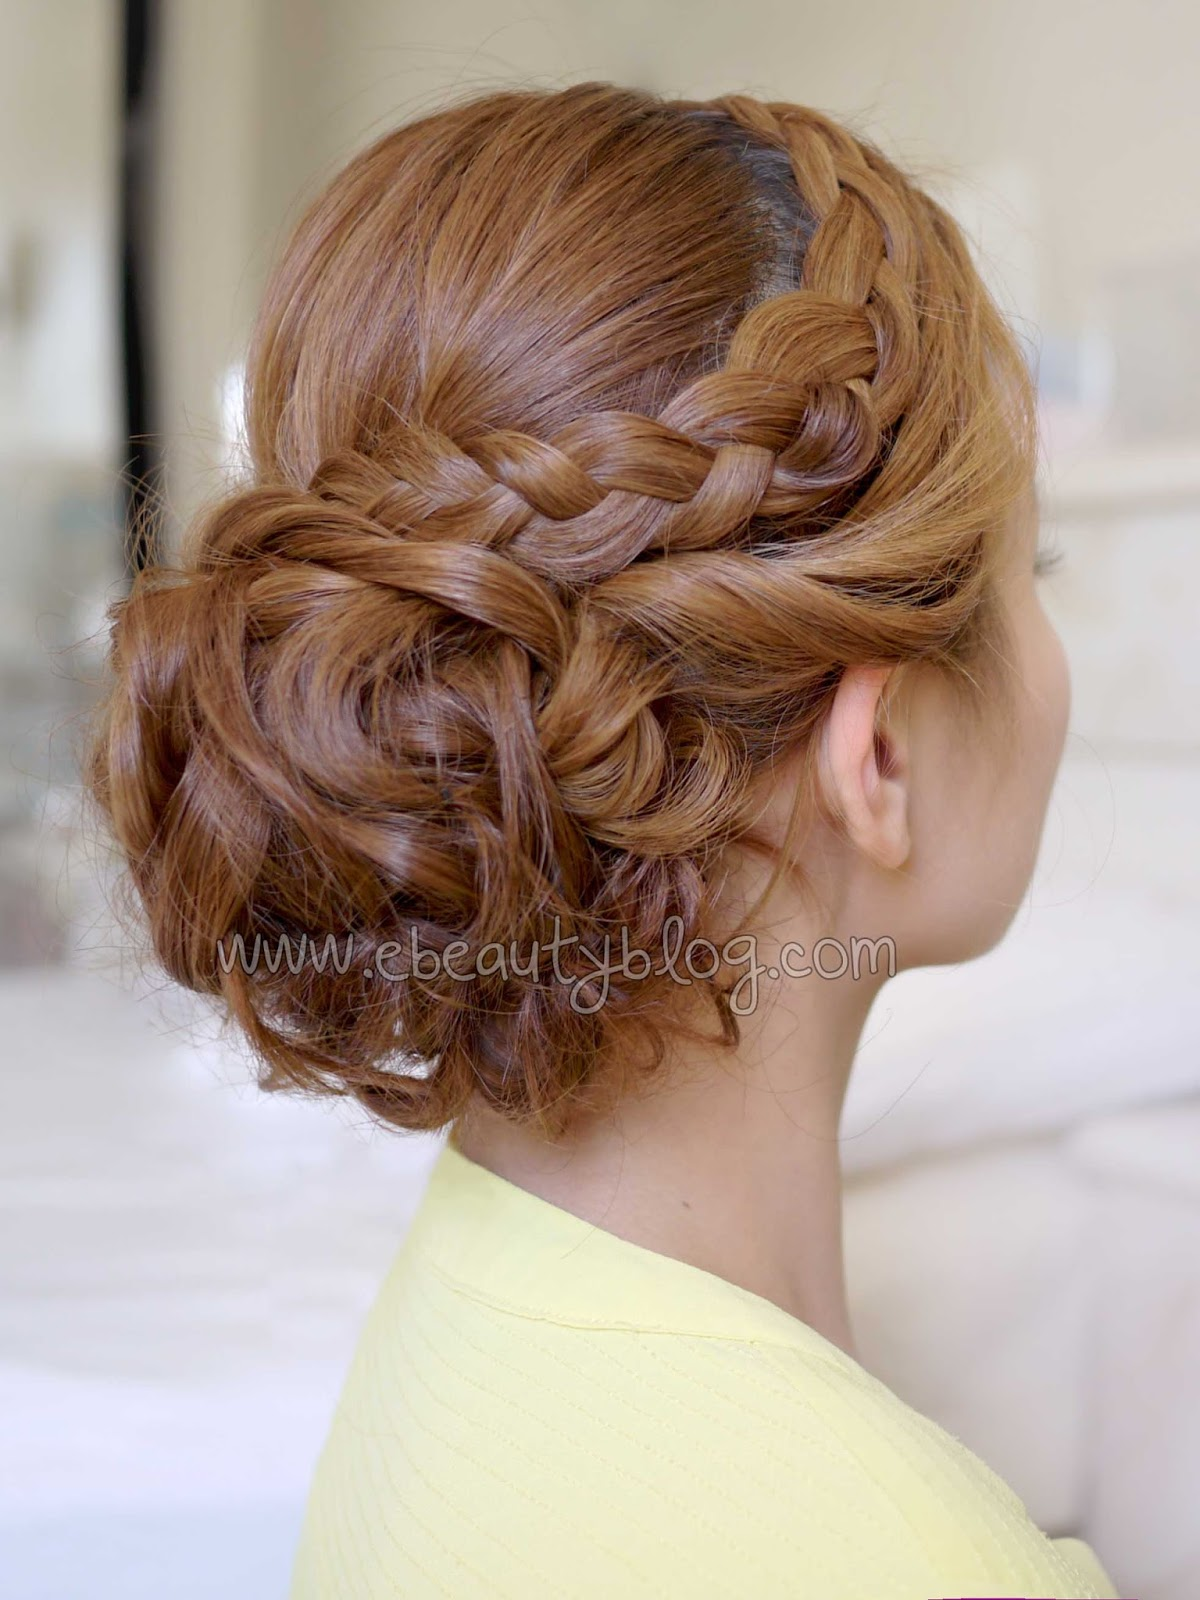 EbeautyBlog Bridal Curly Updo With Braids